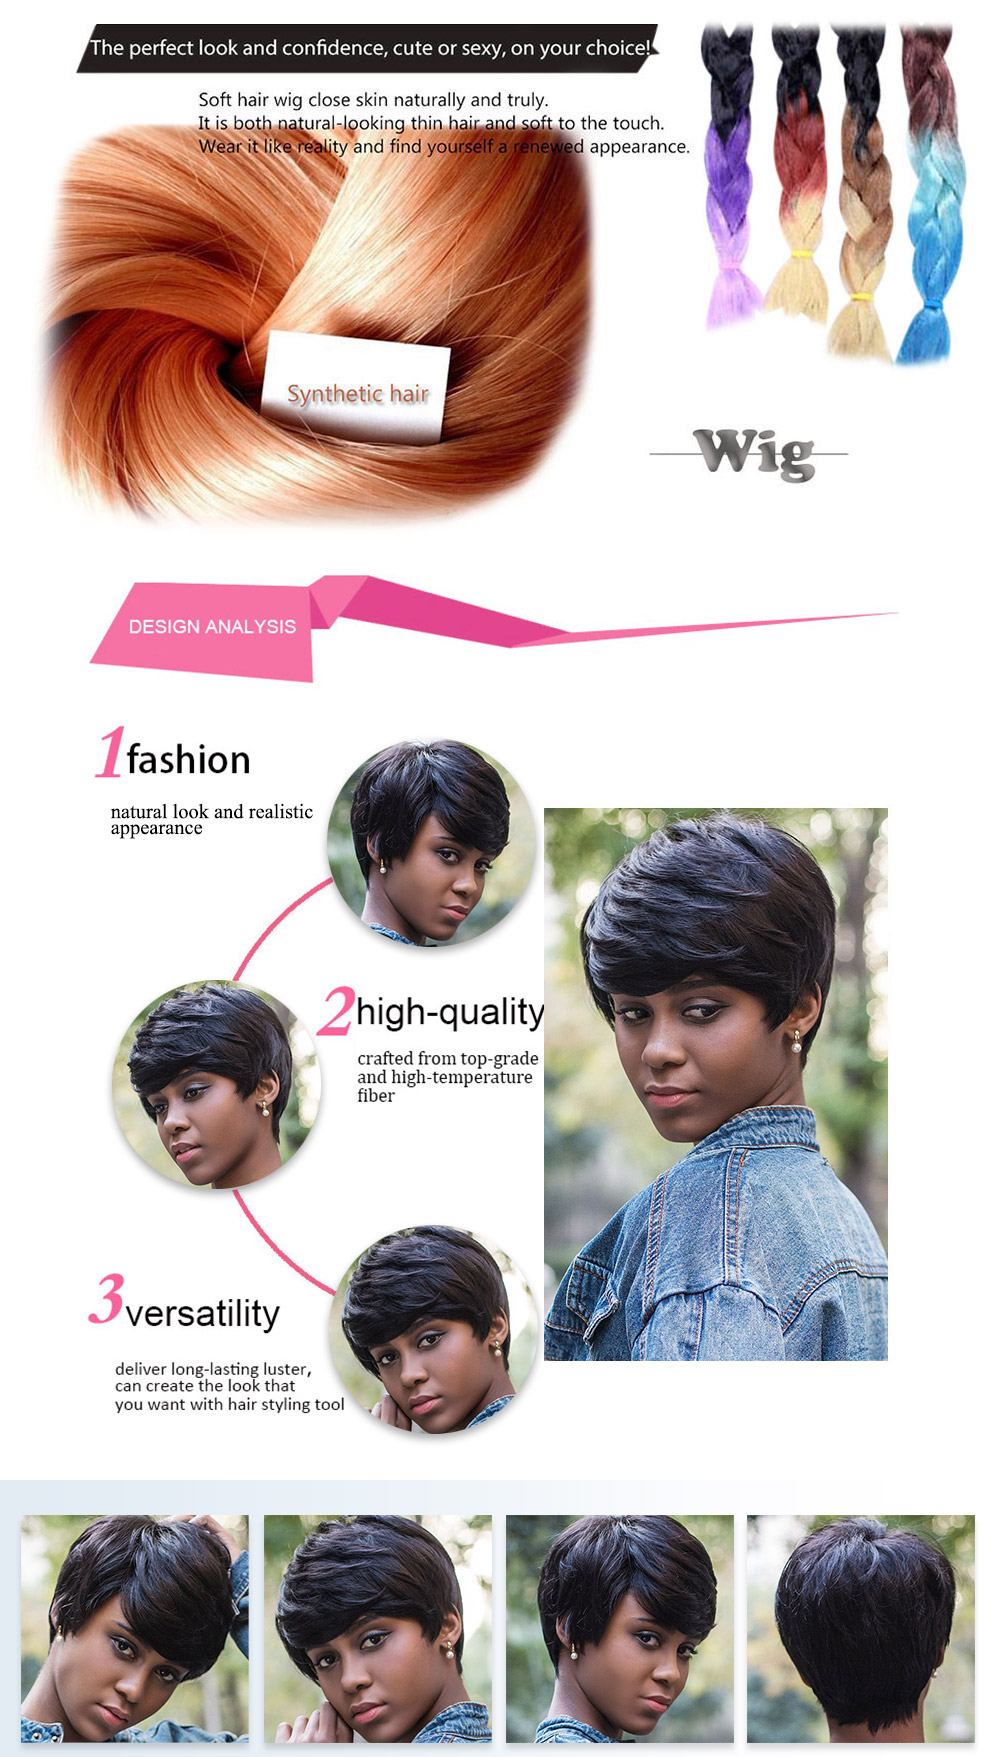 AISIHAIR Short Natural Straight Pixie Cutting Black Wigs for Women